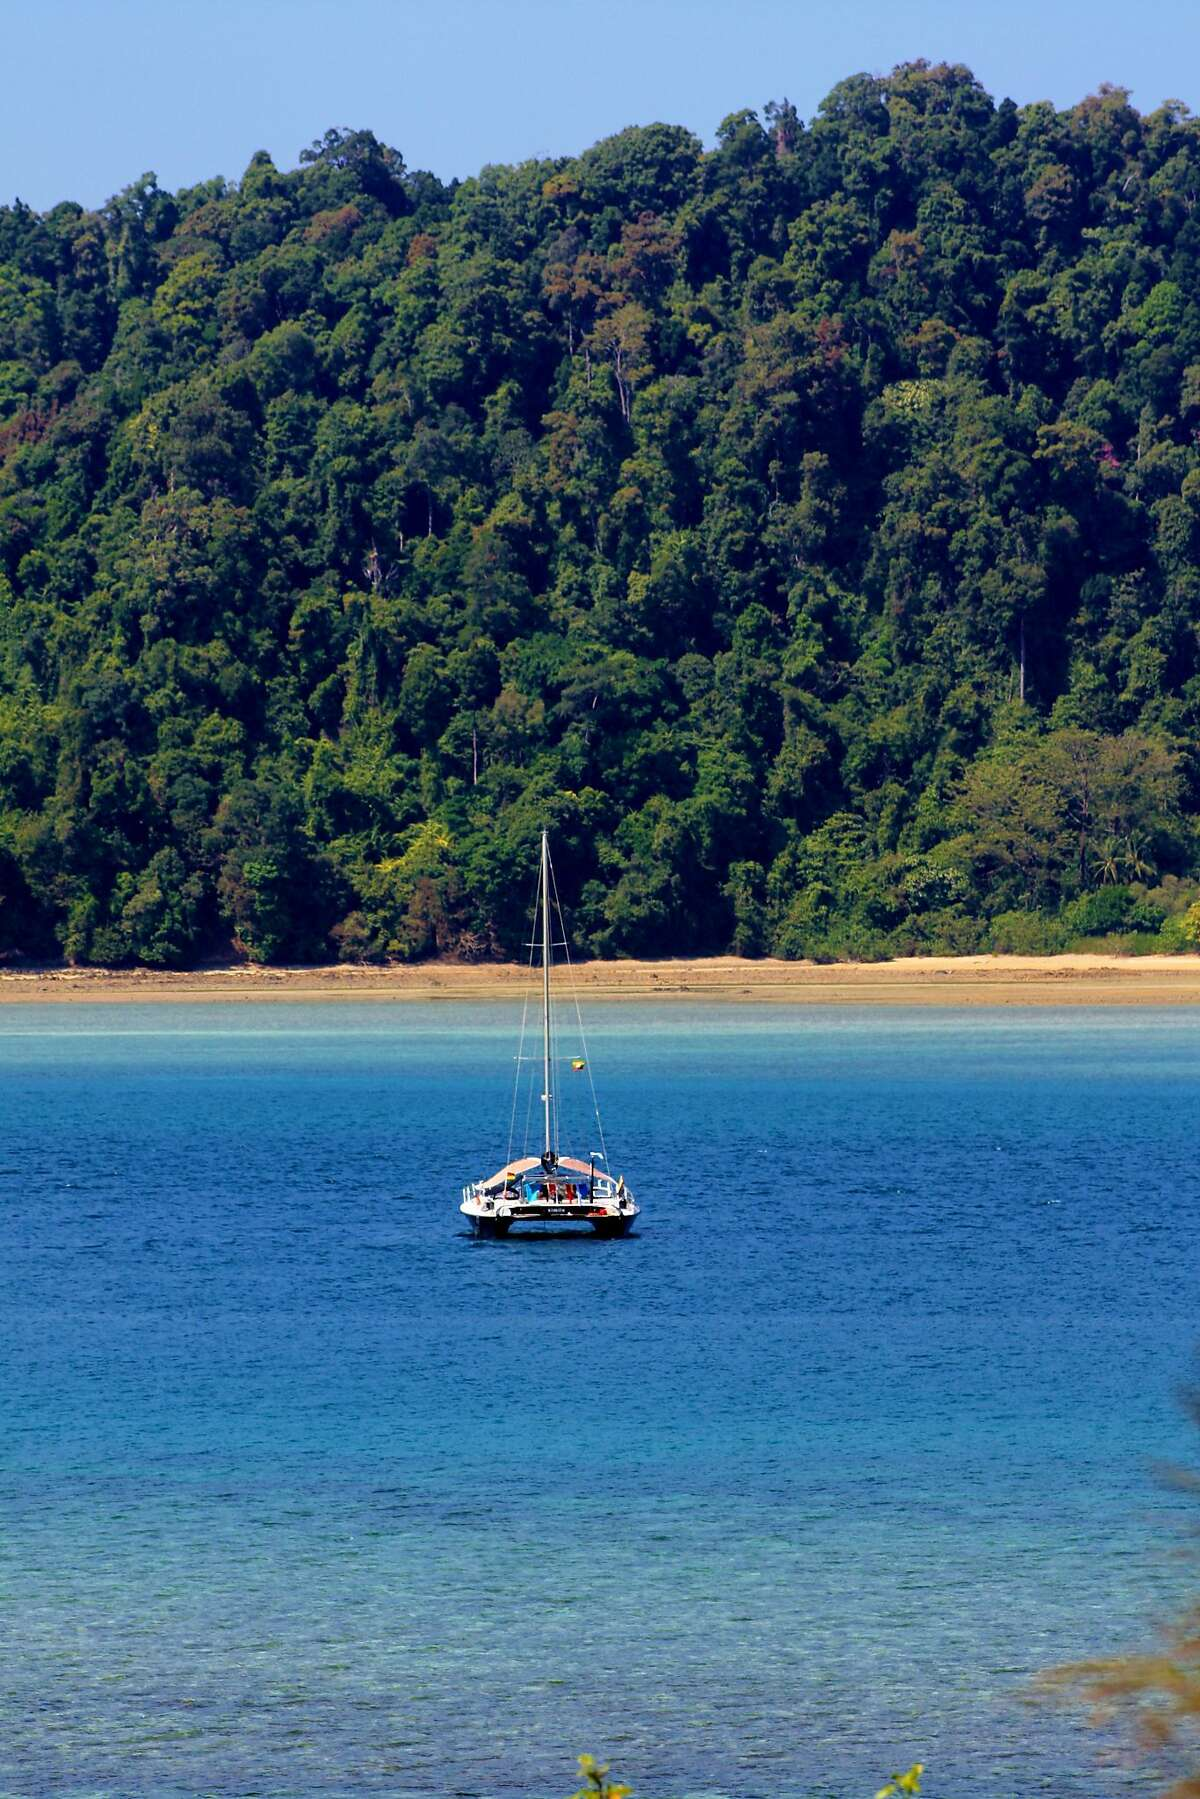 The yacht Simile at anchor in the Myeik Archipelago, southern Burma.